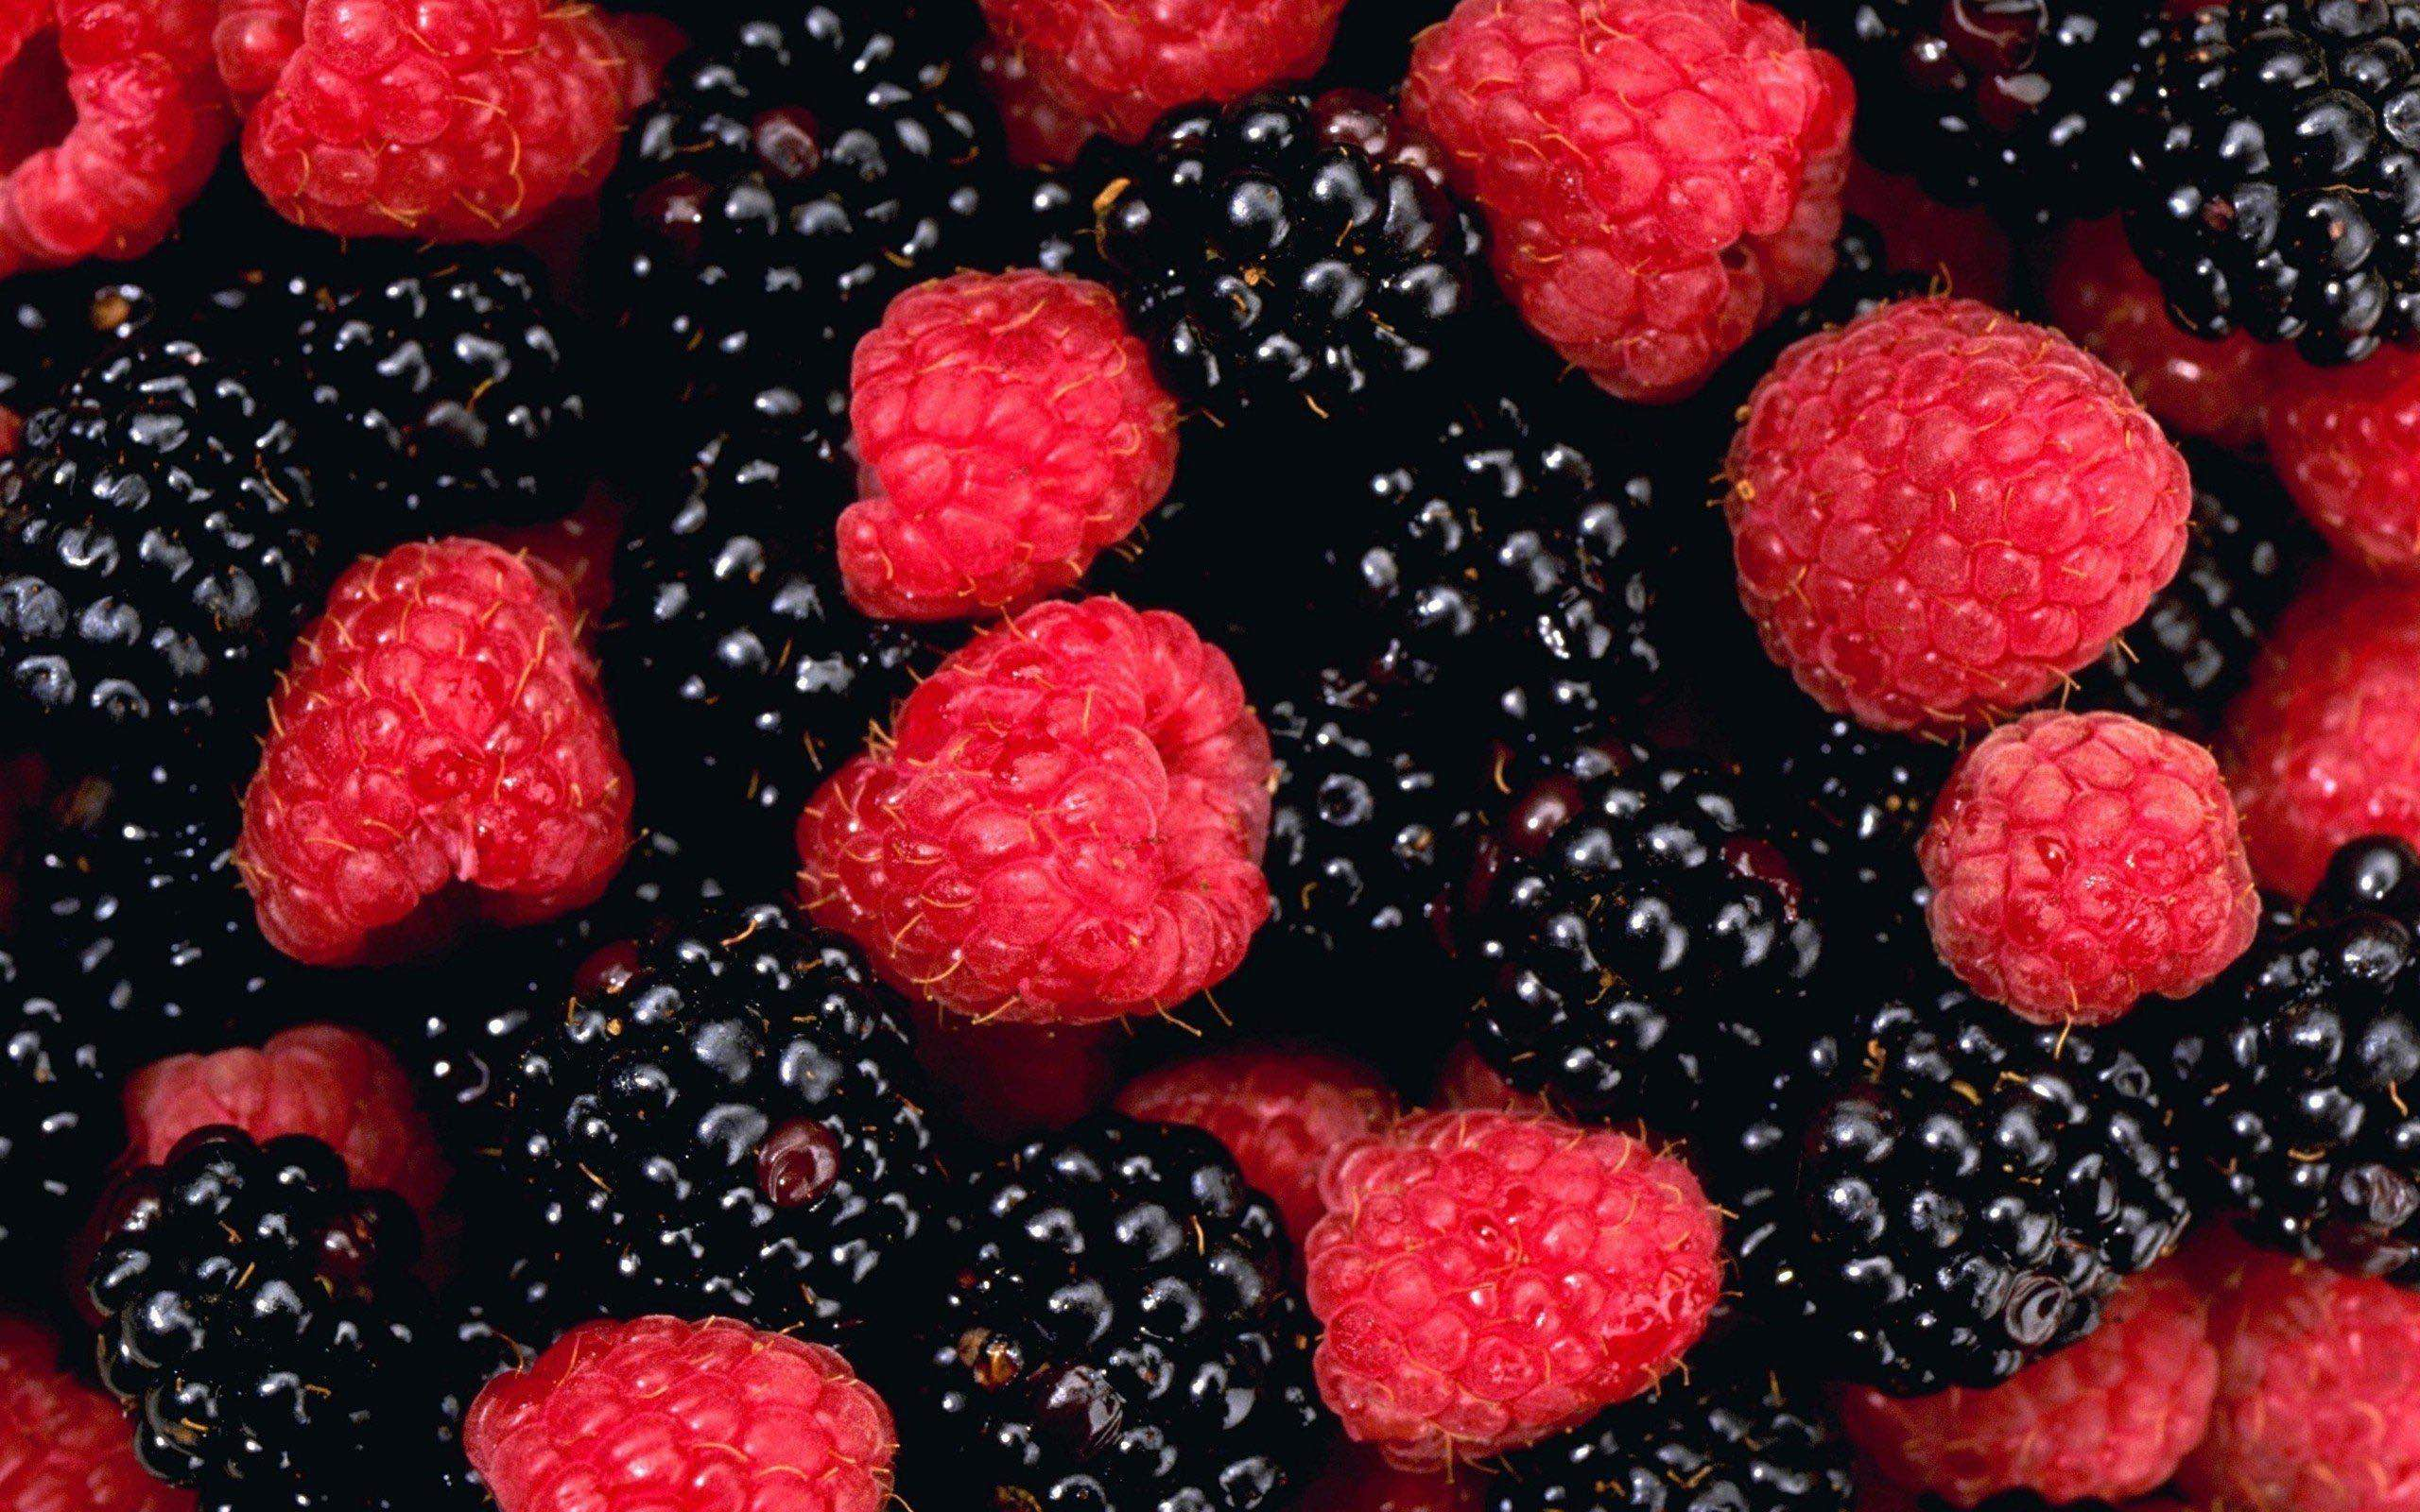 fruits-raspberries-blackberries-free-desktop-background